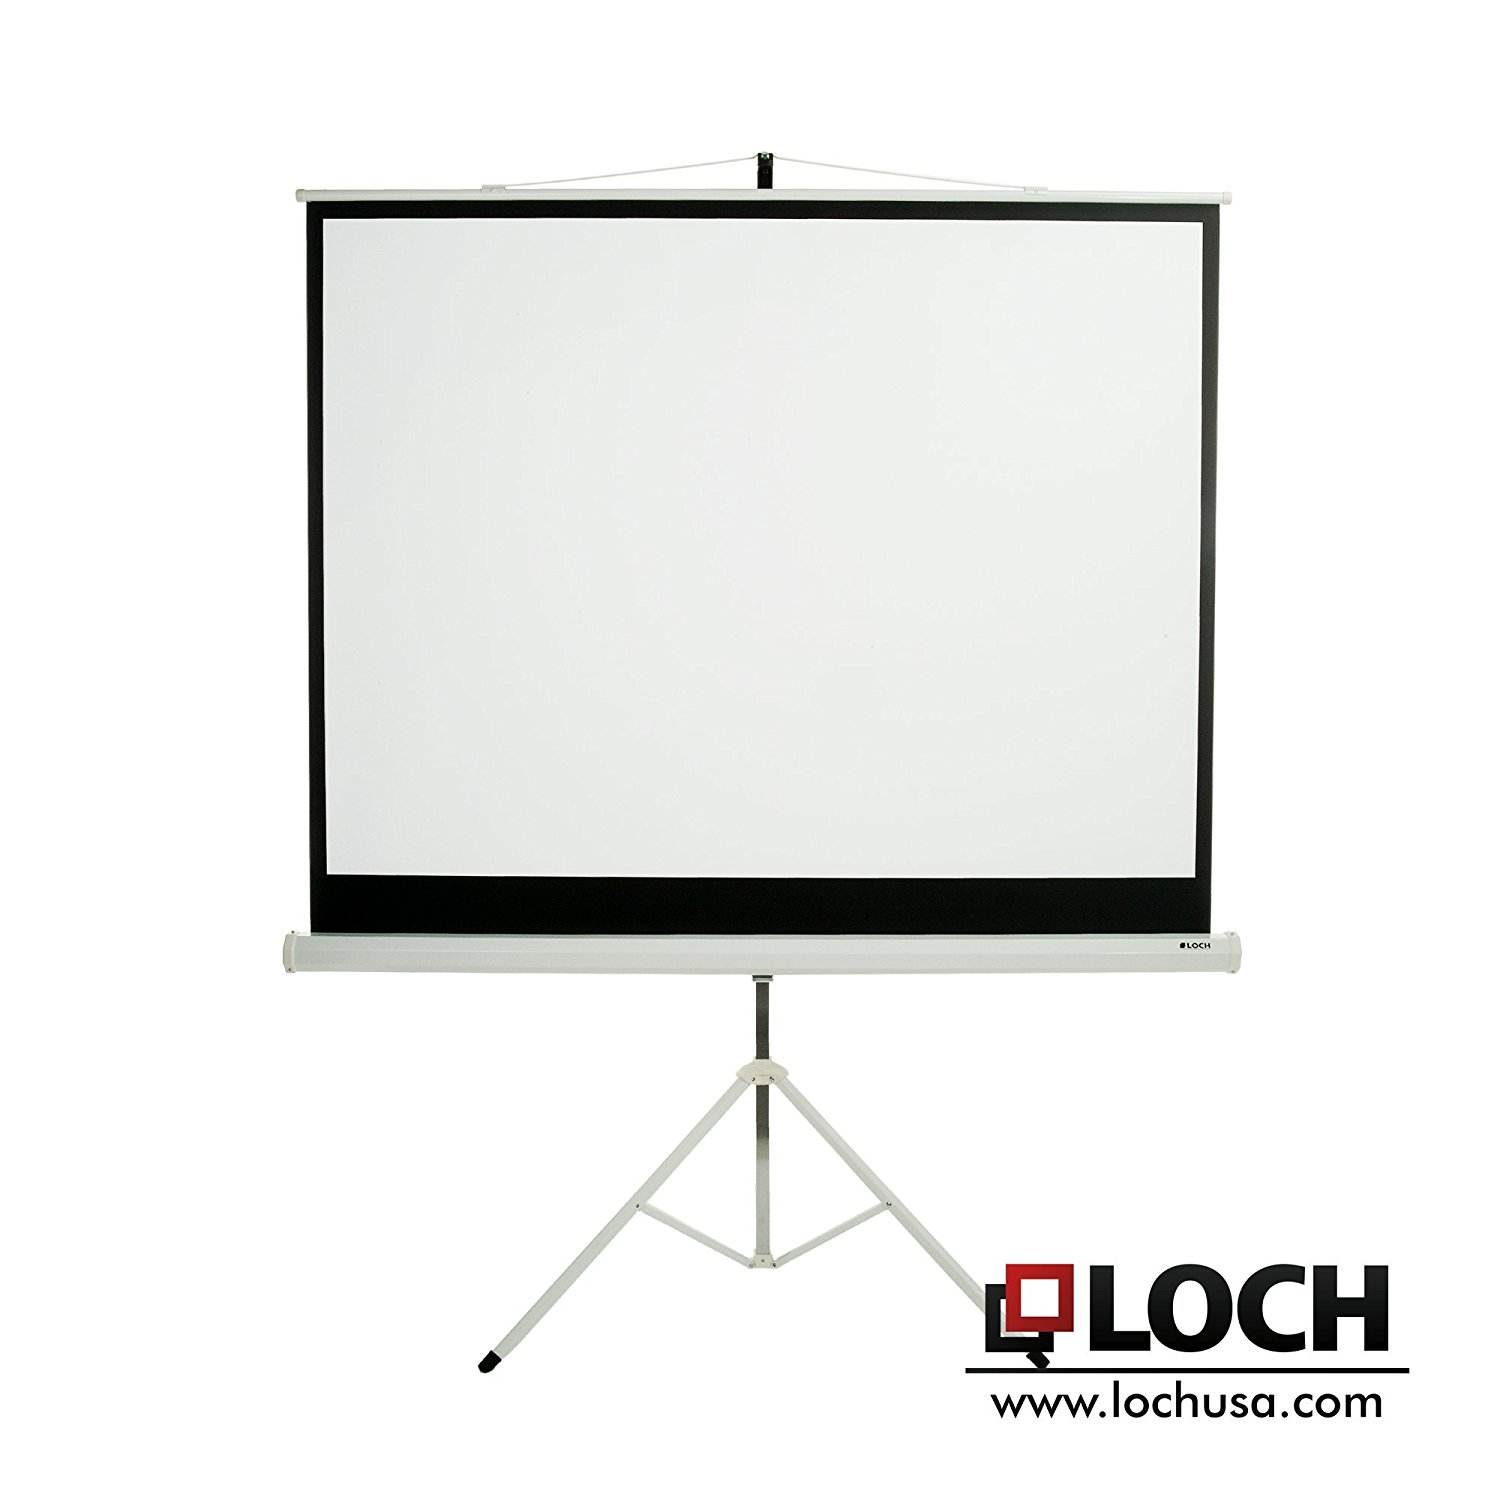 projection rental Local projector and audio/visual equipment rentals available for pickup or delivery in phoenix, glendale, tempe, mesa, gilbert, and chandler.